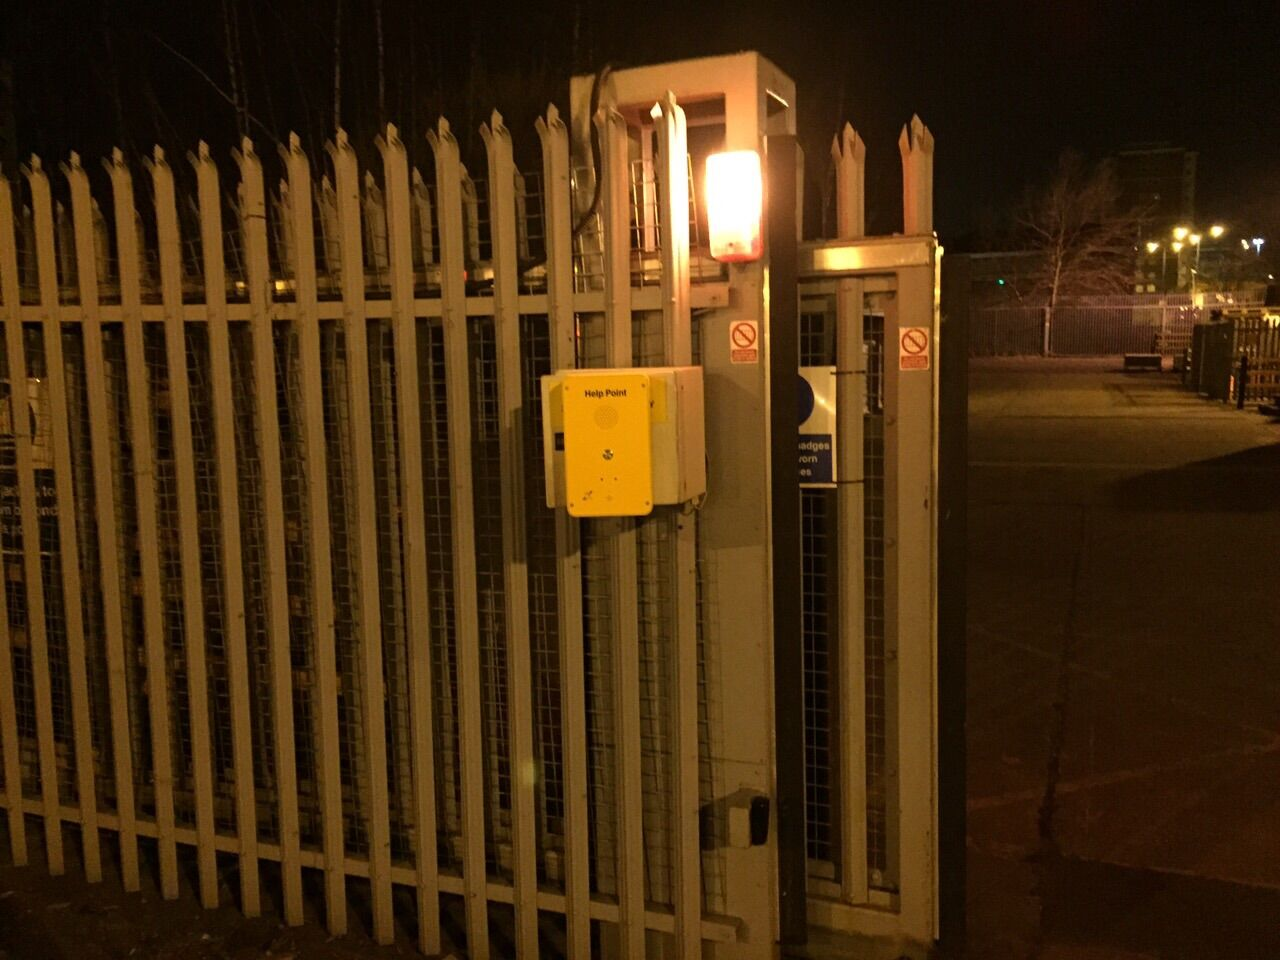 emergency help point intercom